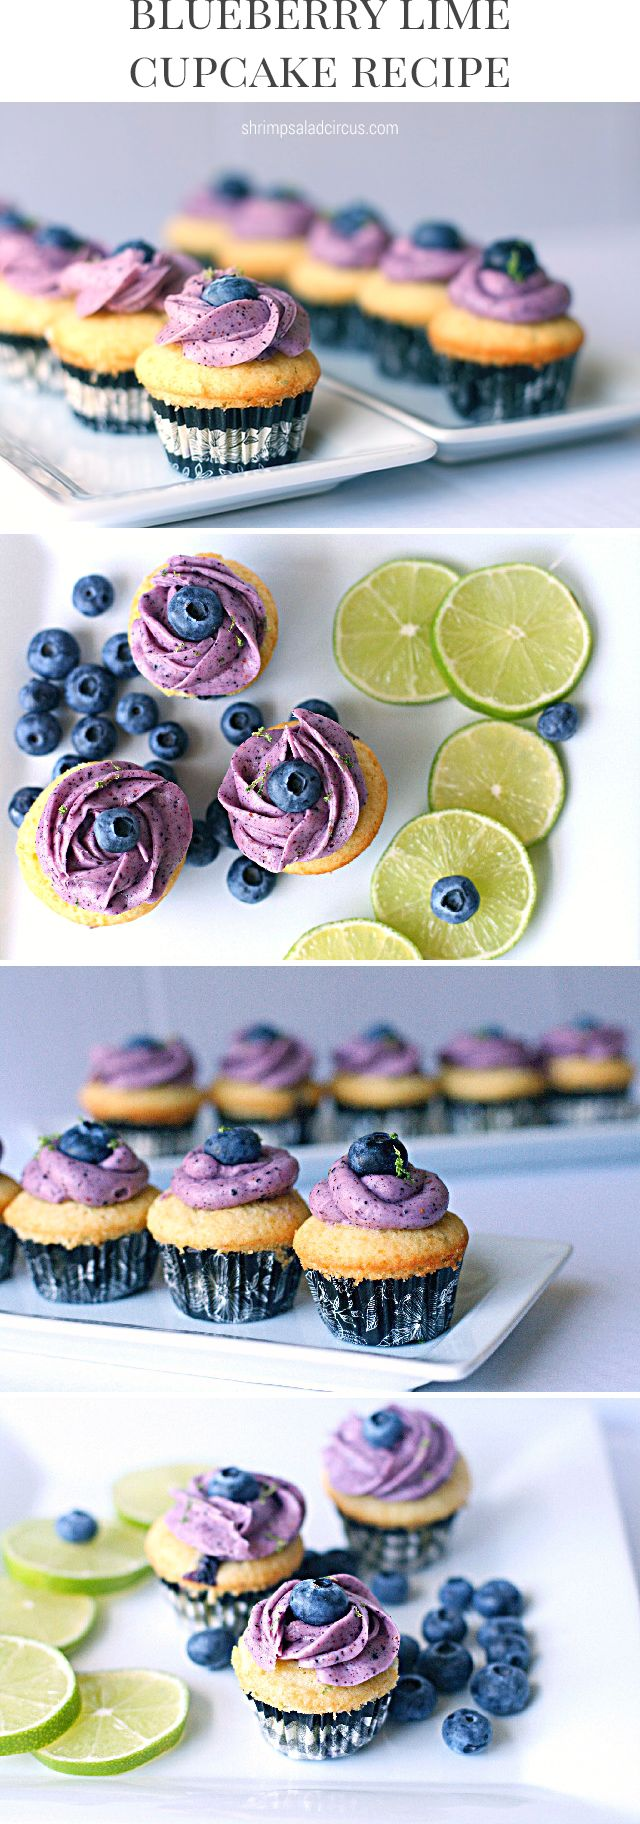 Lime Blueberry Cupcake Recipe with Fresh Fruit, Juice, and Natural Ingredients - The perfect healthy ish party food or sweet snack or dessert treat!